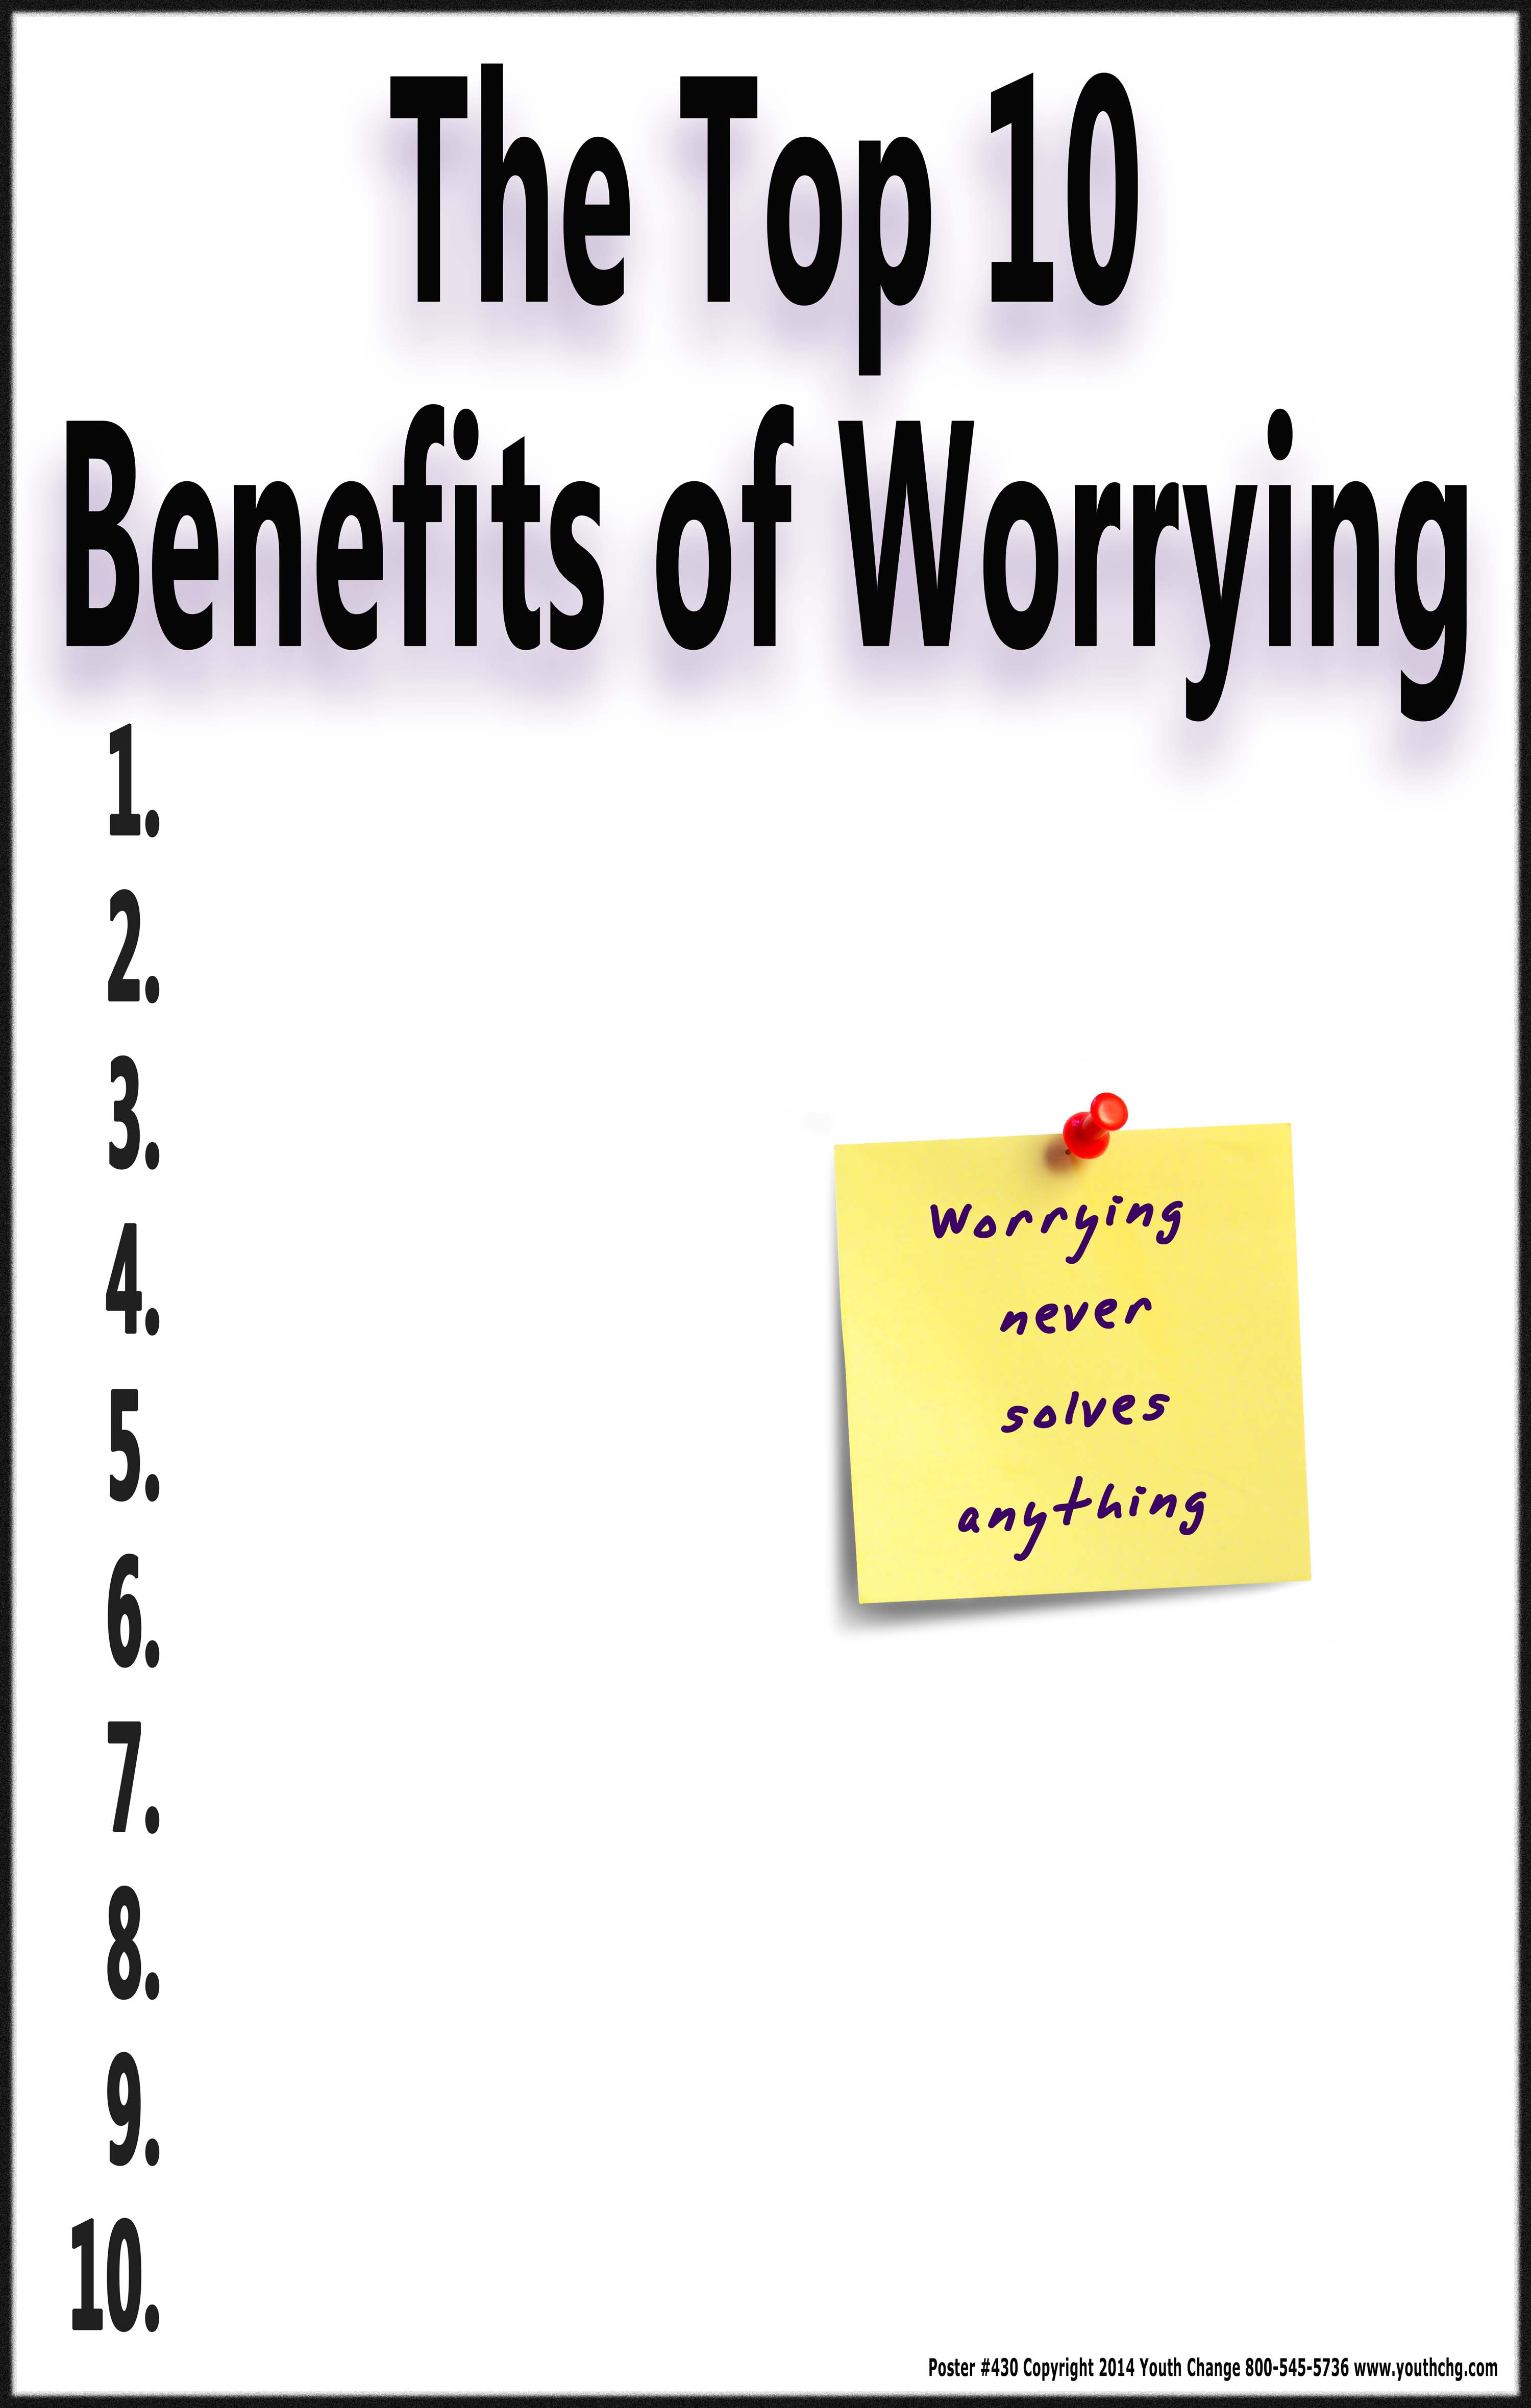 Inspirational Motivational Message Poster Reduces Worry